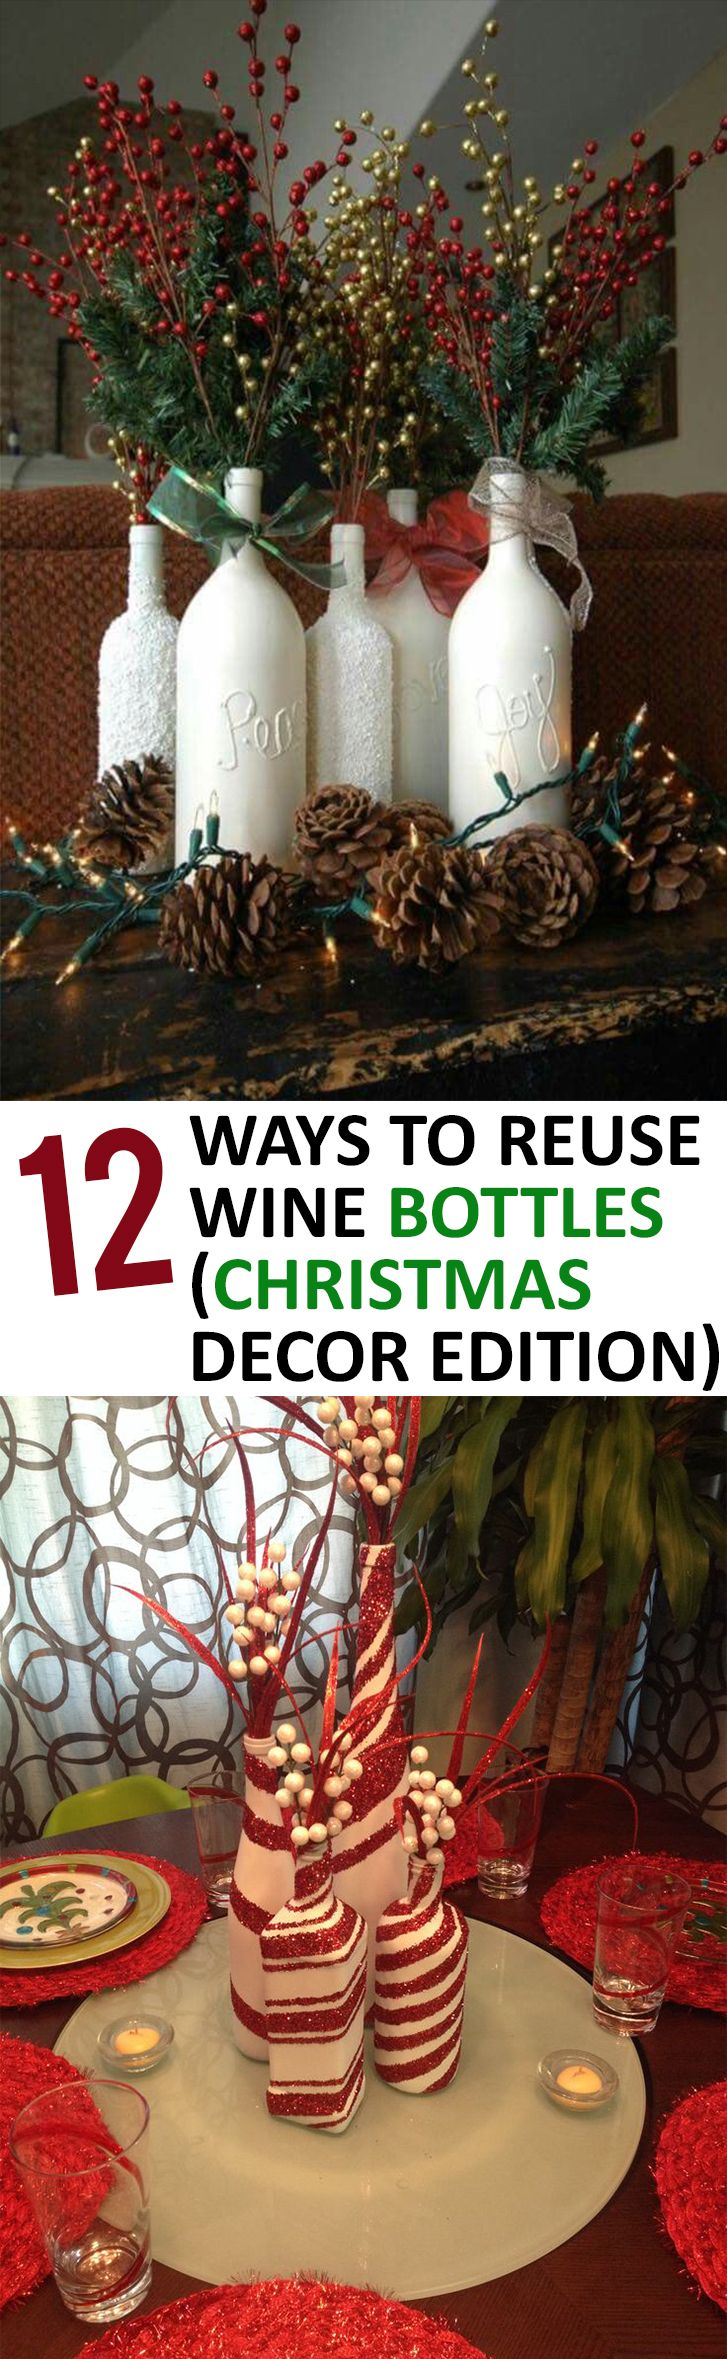 12 Ways To Reuse Wine Bottles (christmas Decor Edition)